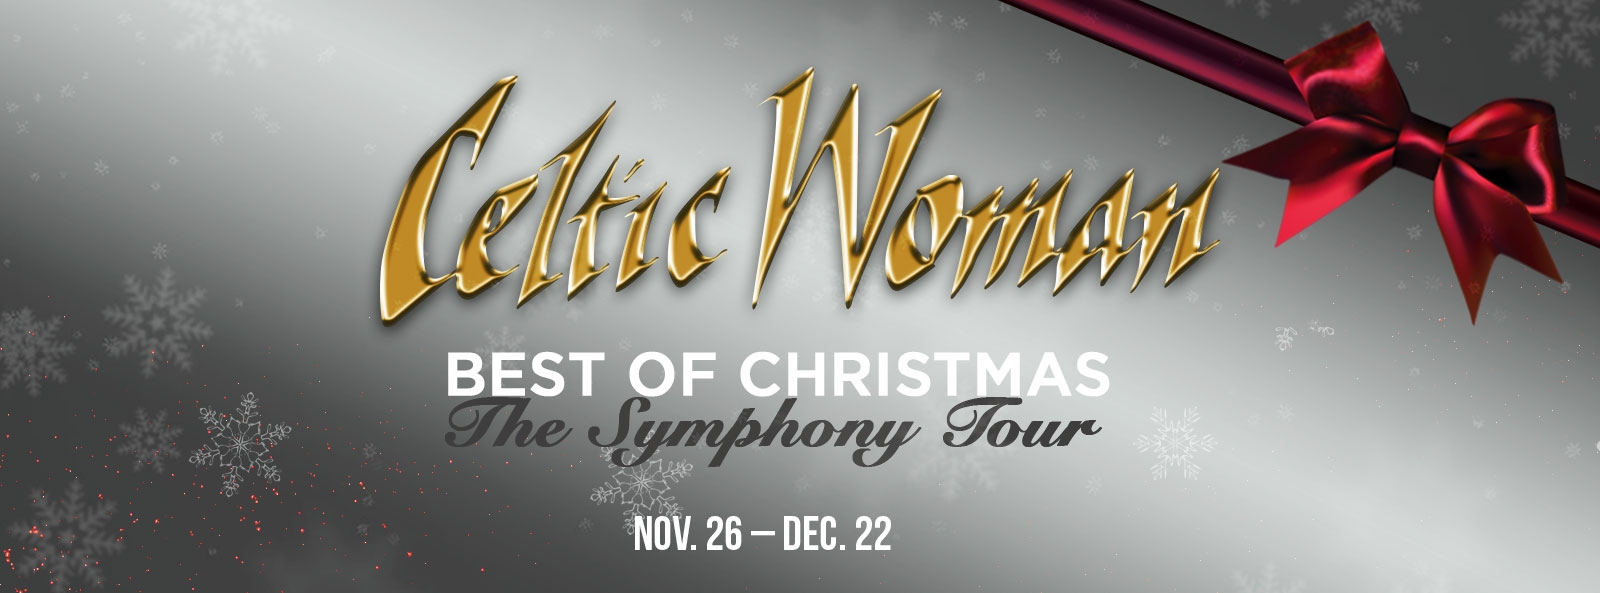 1 - Celtic Woman Home For Christmas